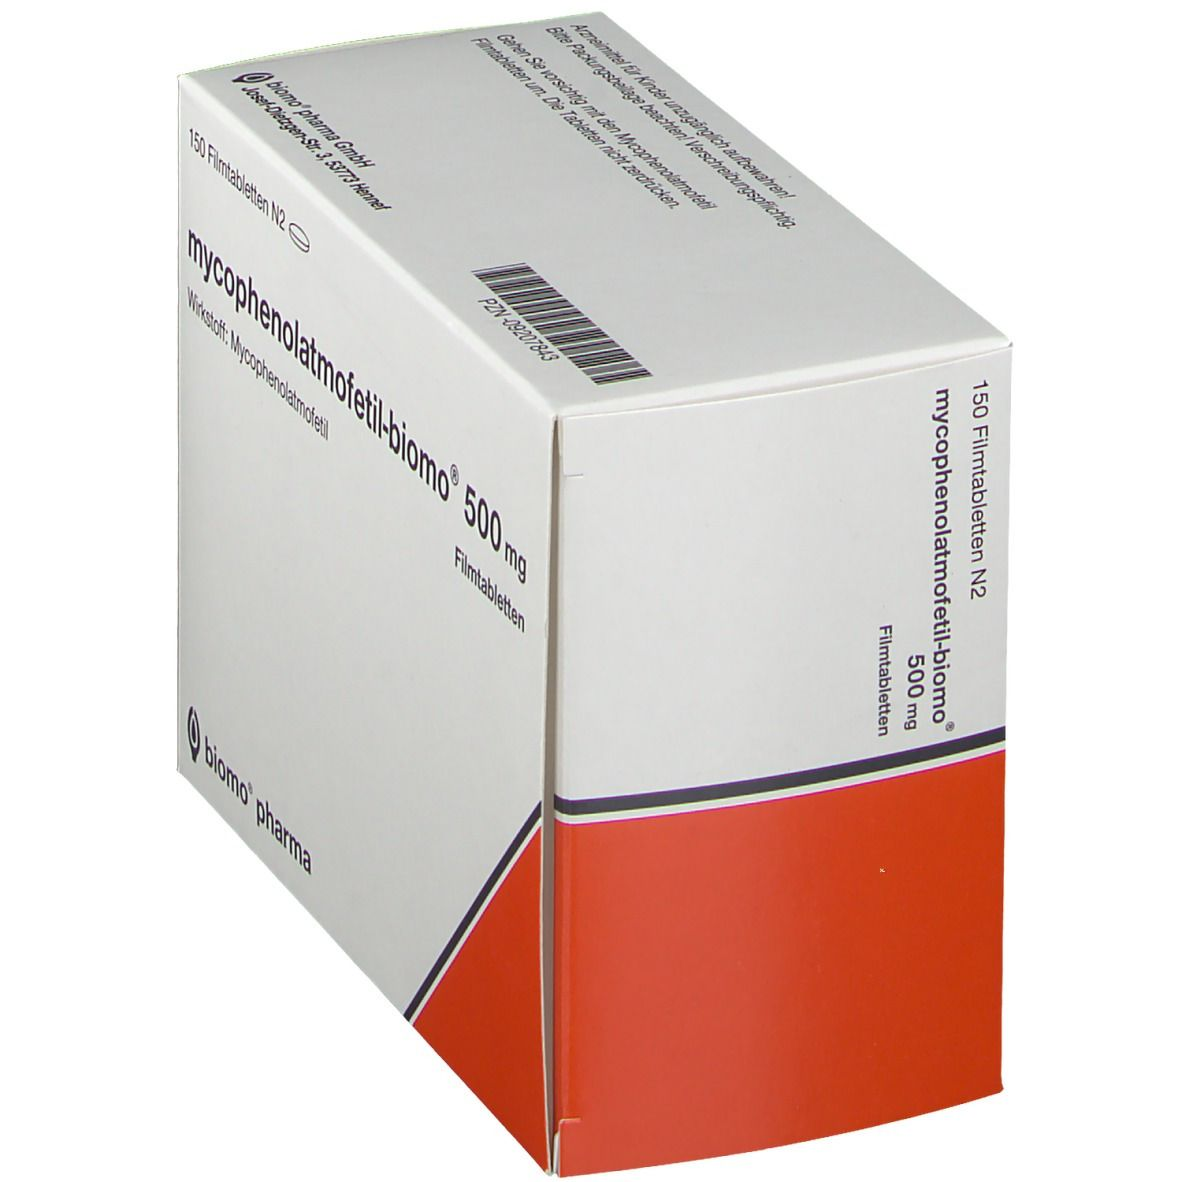 MYCOPHENOLATMOFETIL biomo 500 mg Filmtabletten